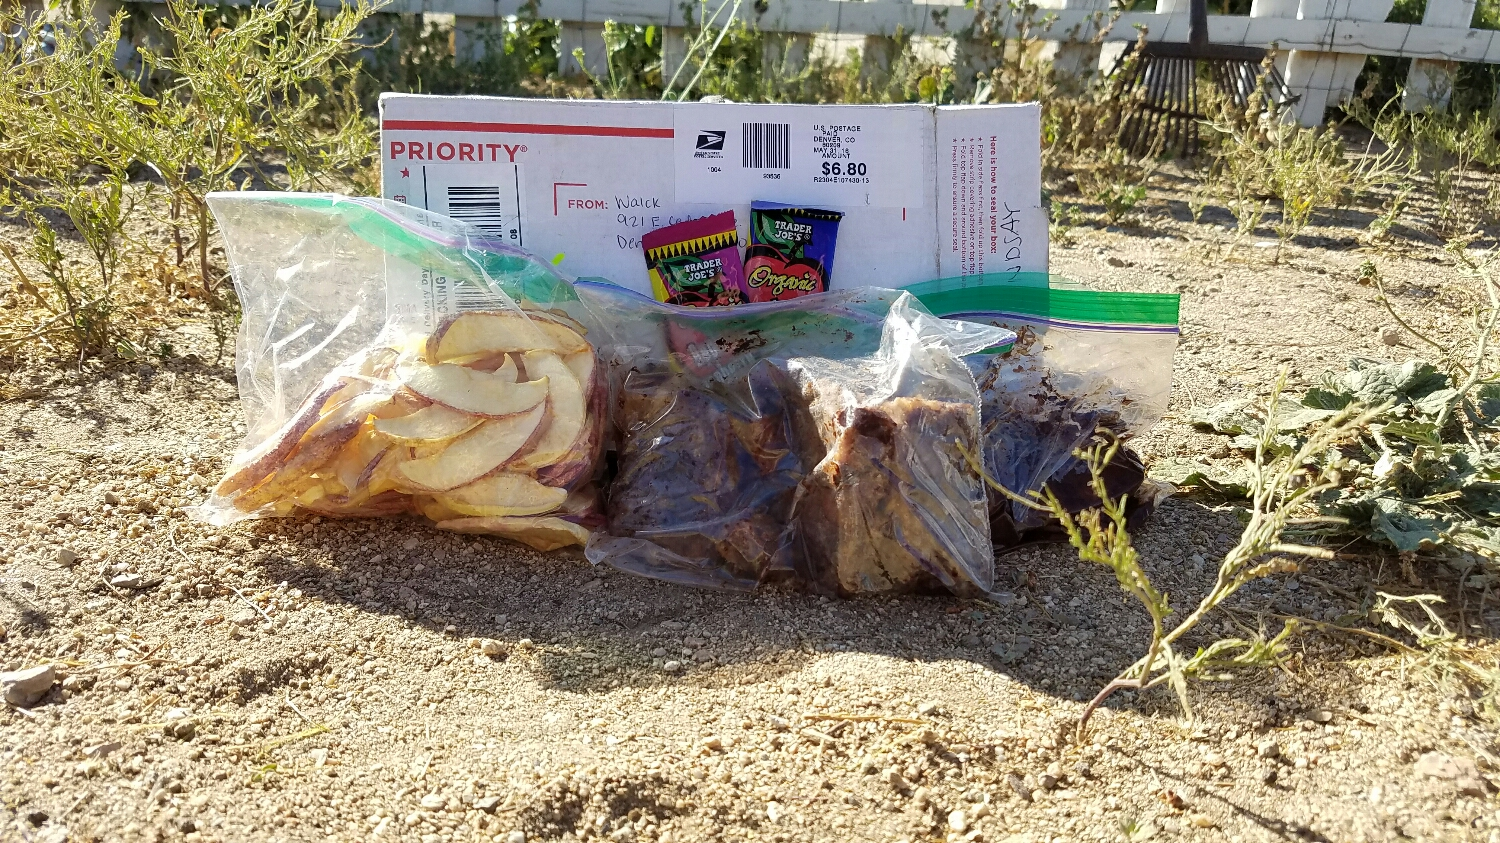 the contents of the box! Some of thru-hiking brownies are already missing...oops